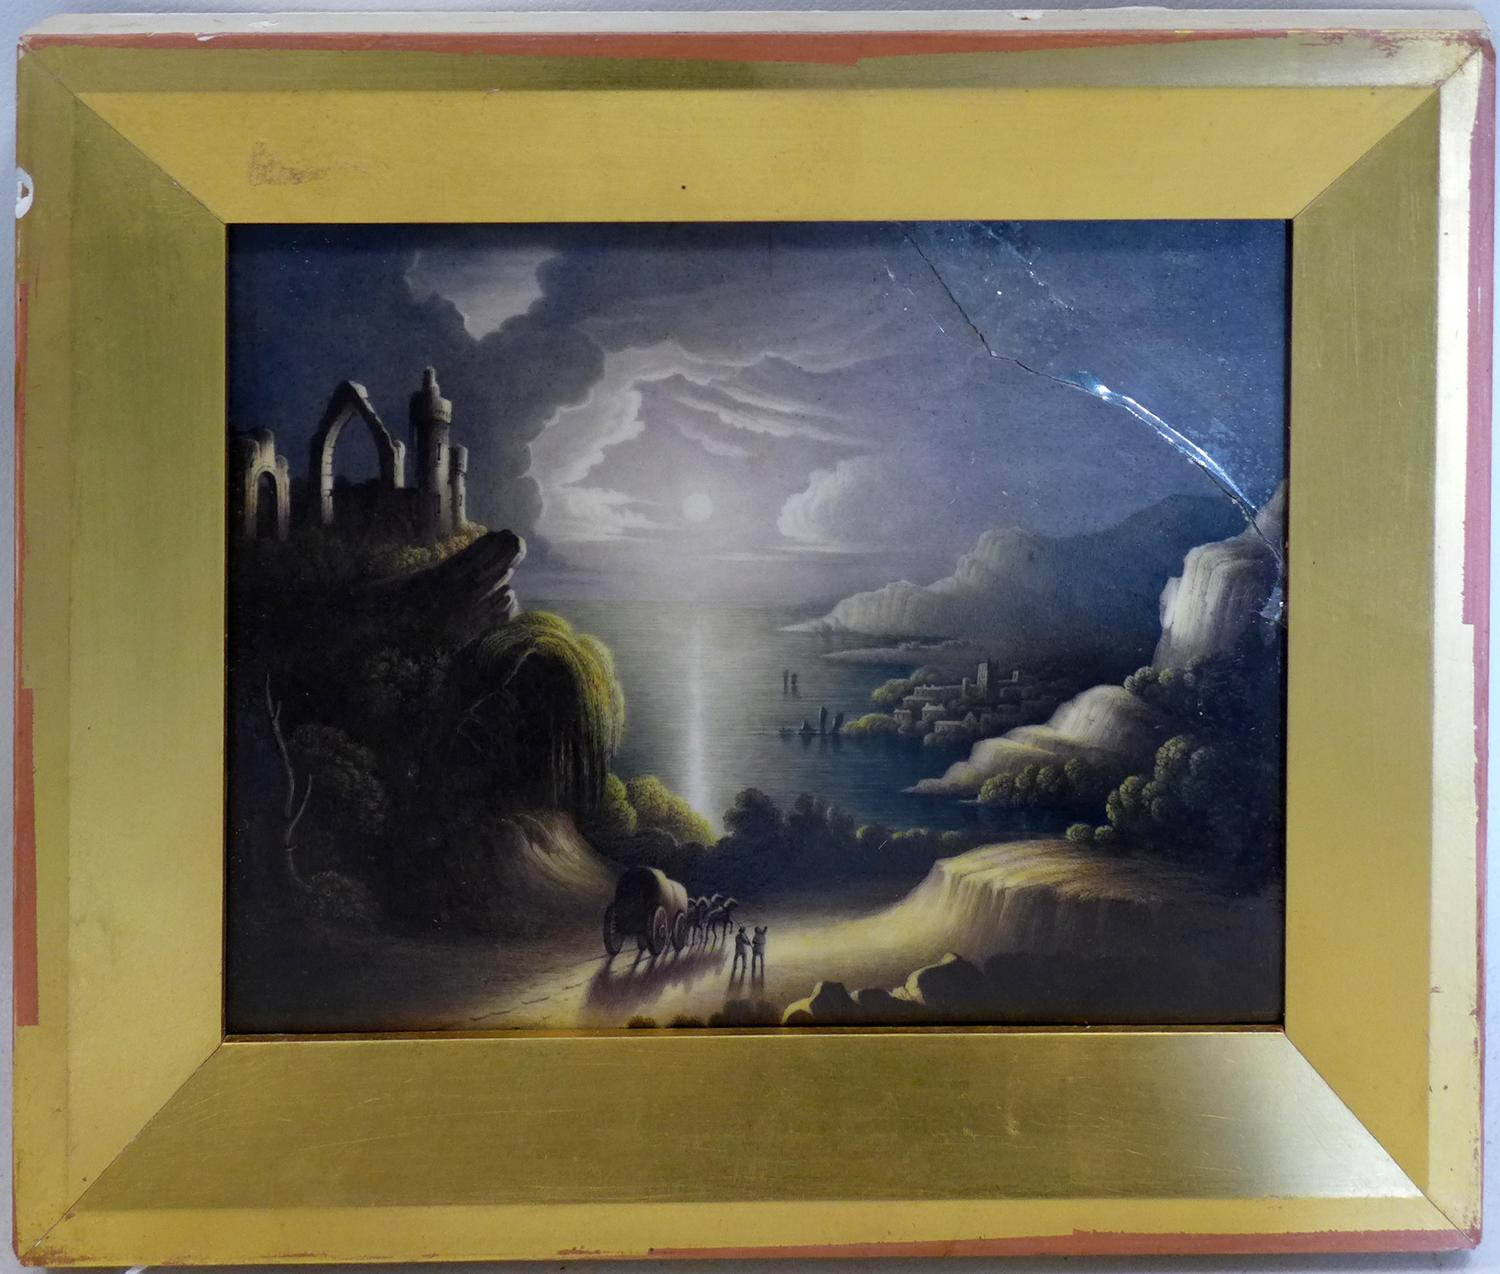 Lot 379 - A late 19th/early 20th century painting on porcelain depicting a coastal scene at night, signed